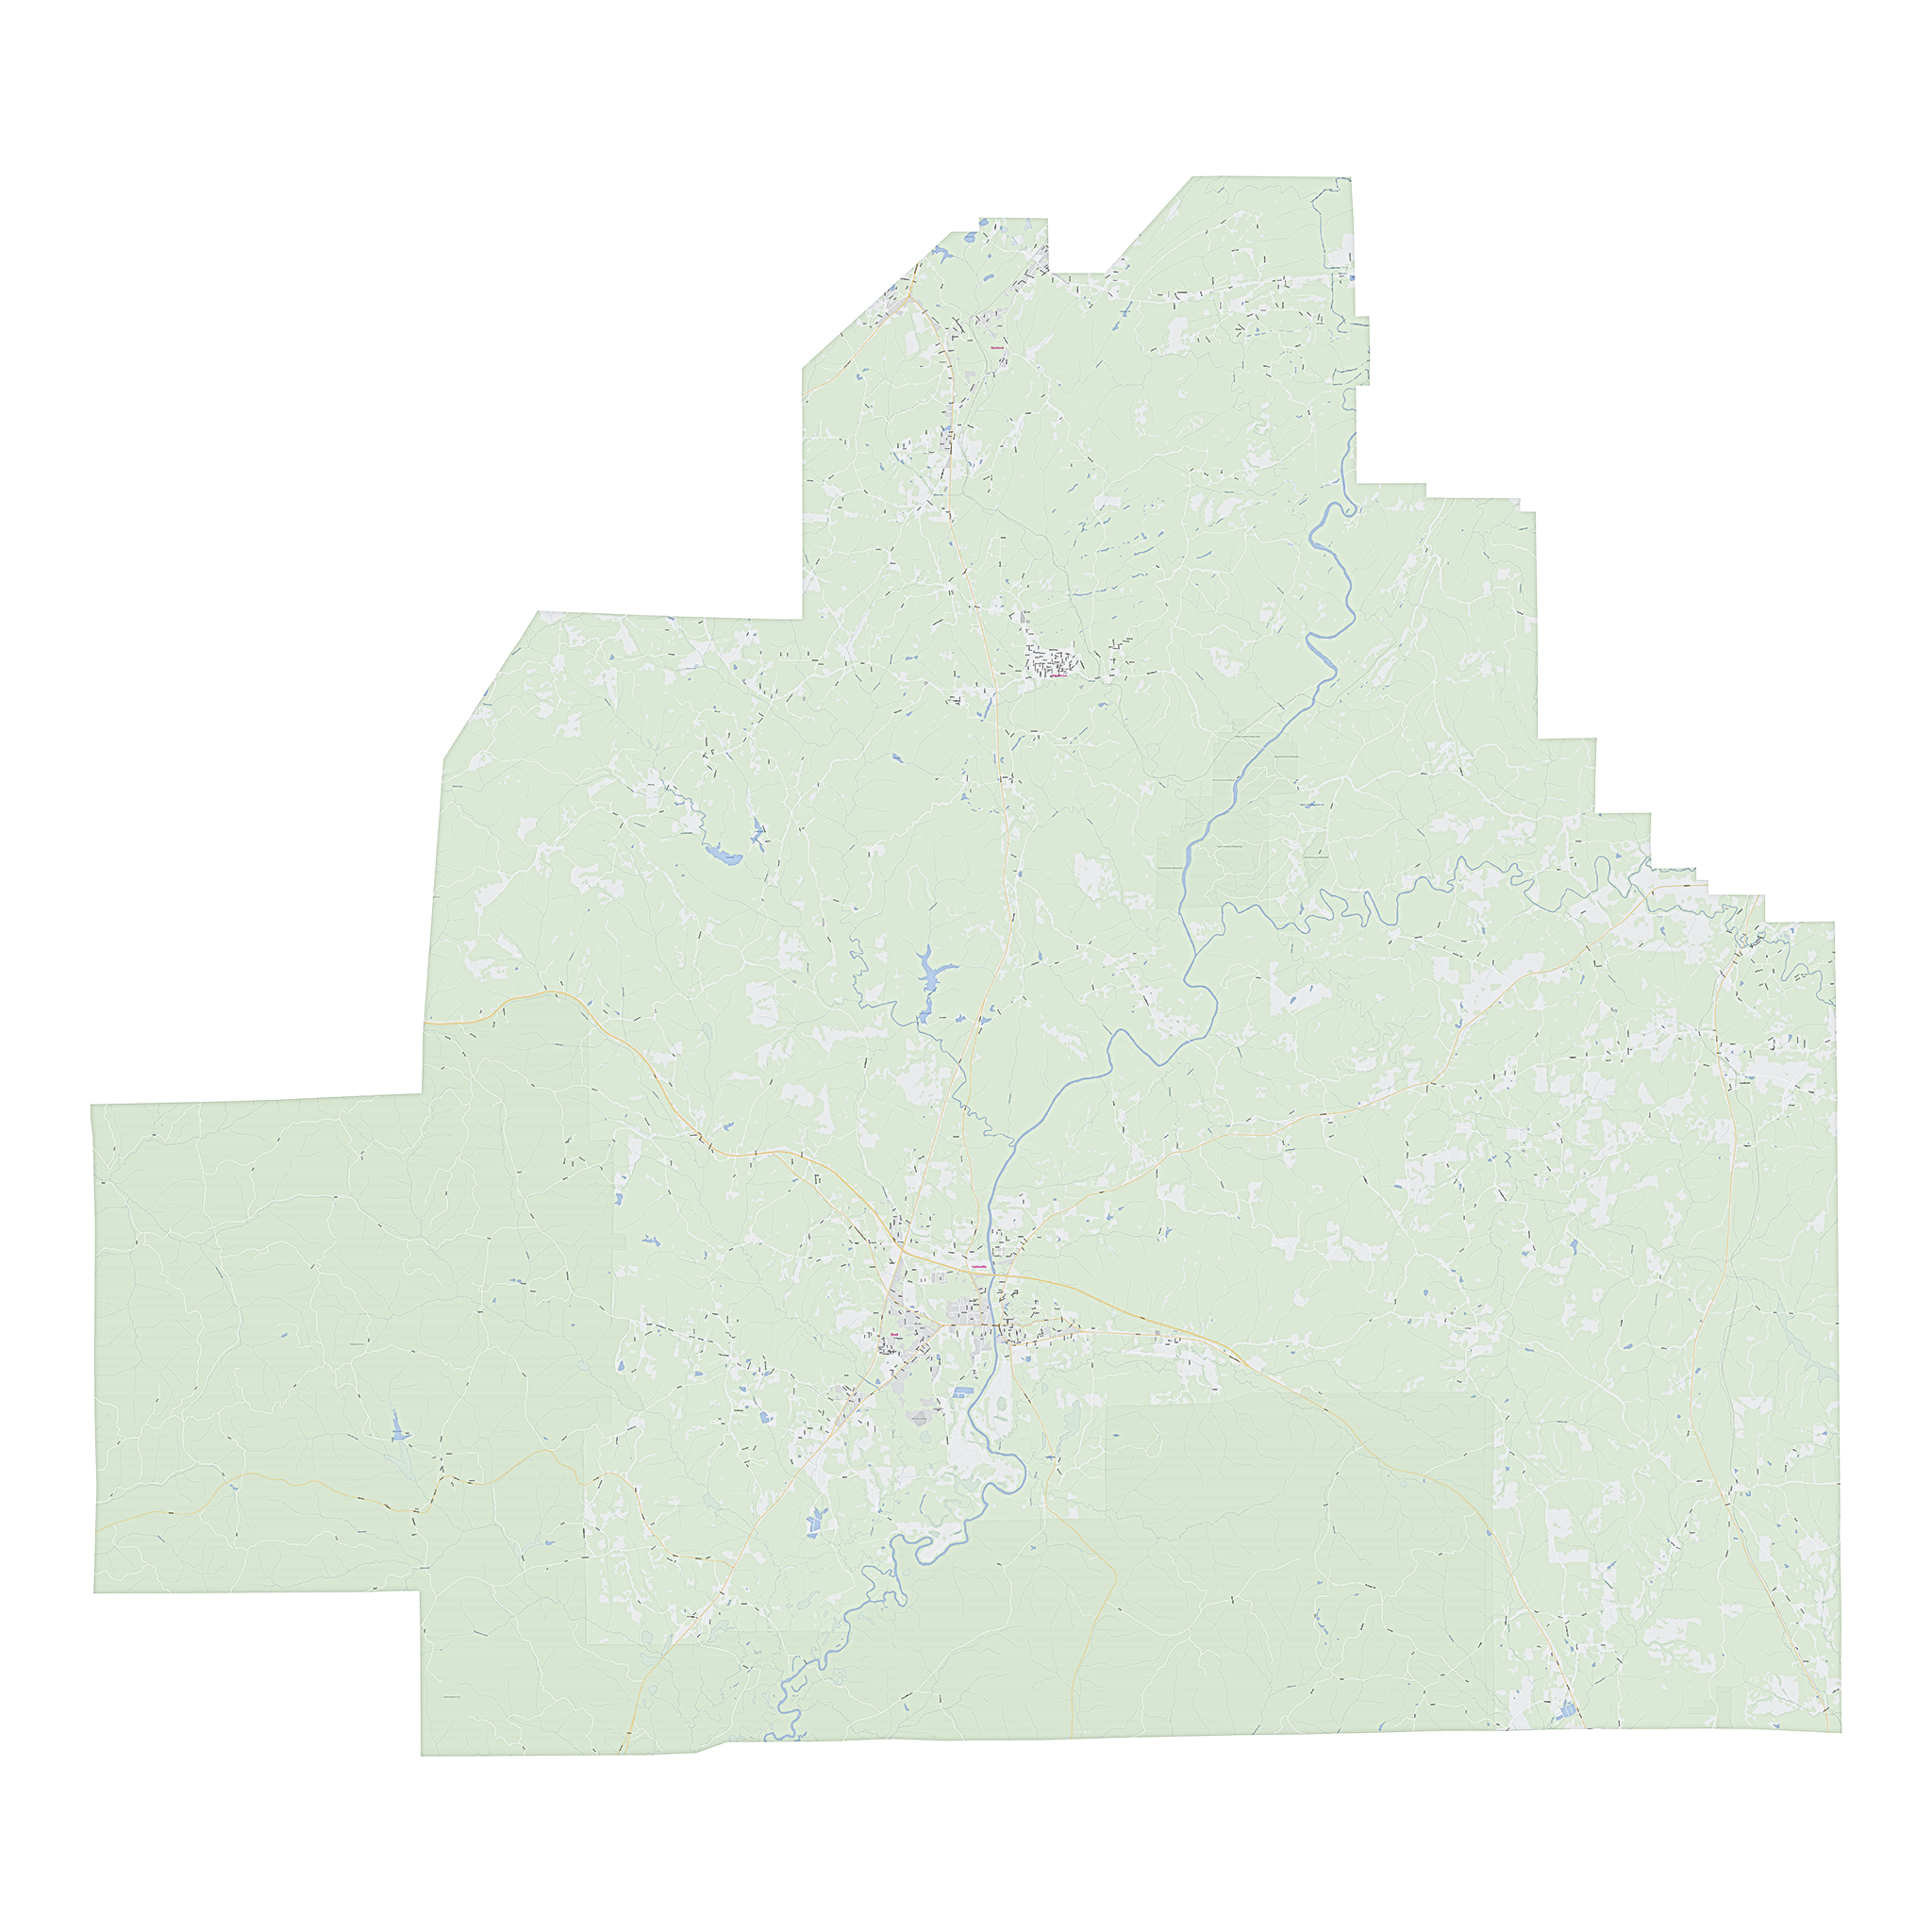 Royalty-free, digital vector street map of Bibb County, Alabama.